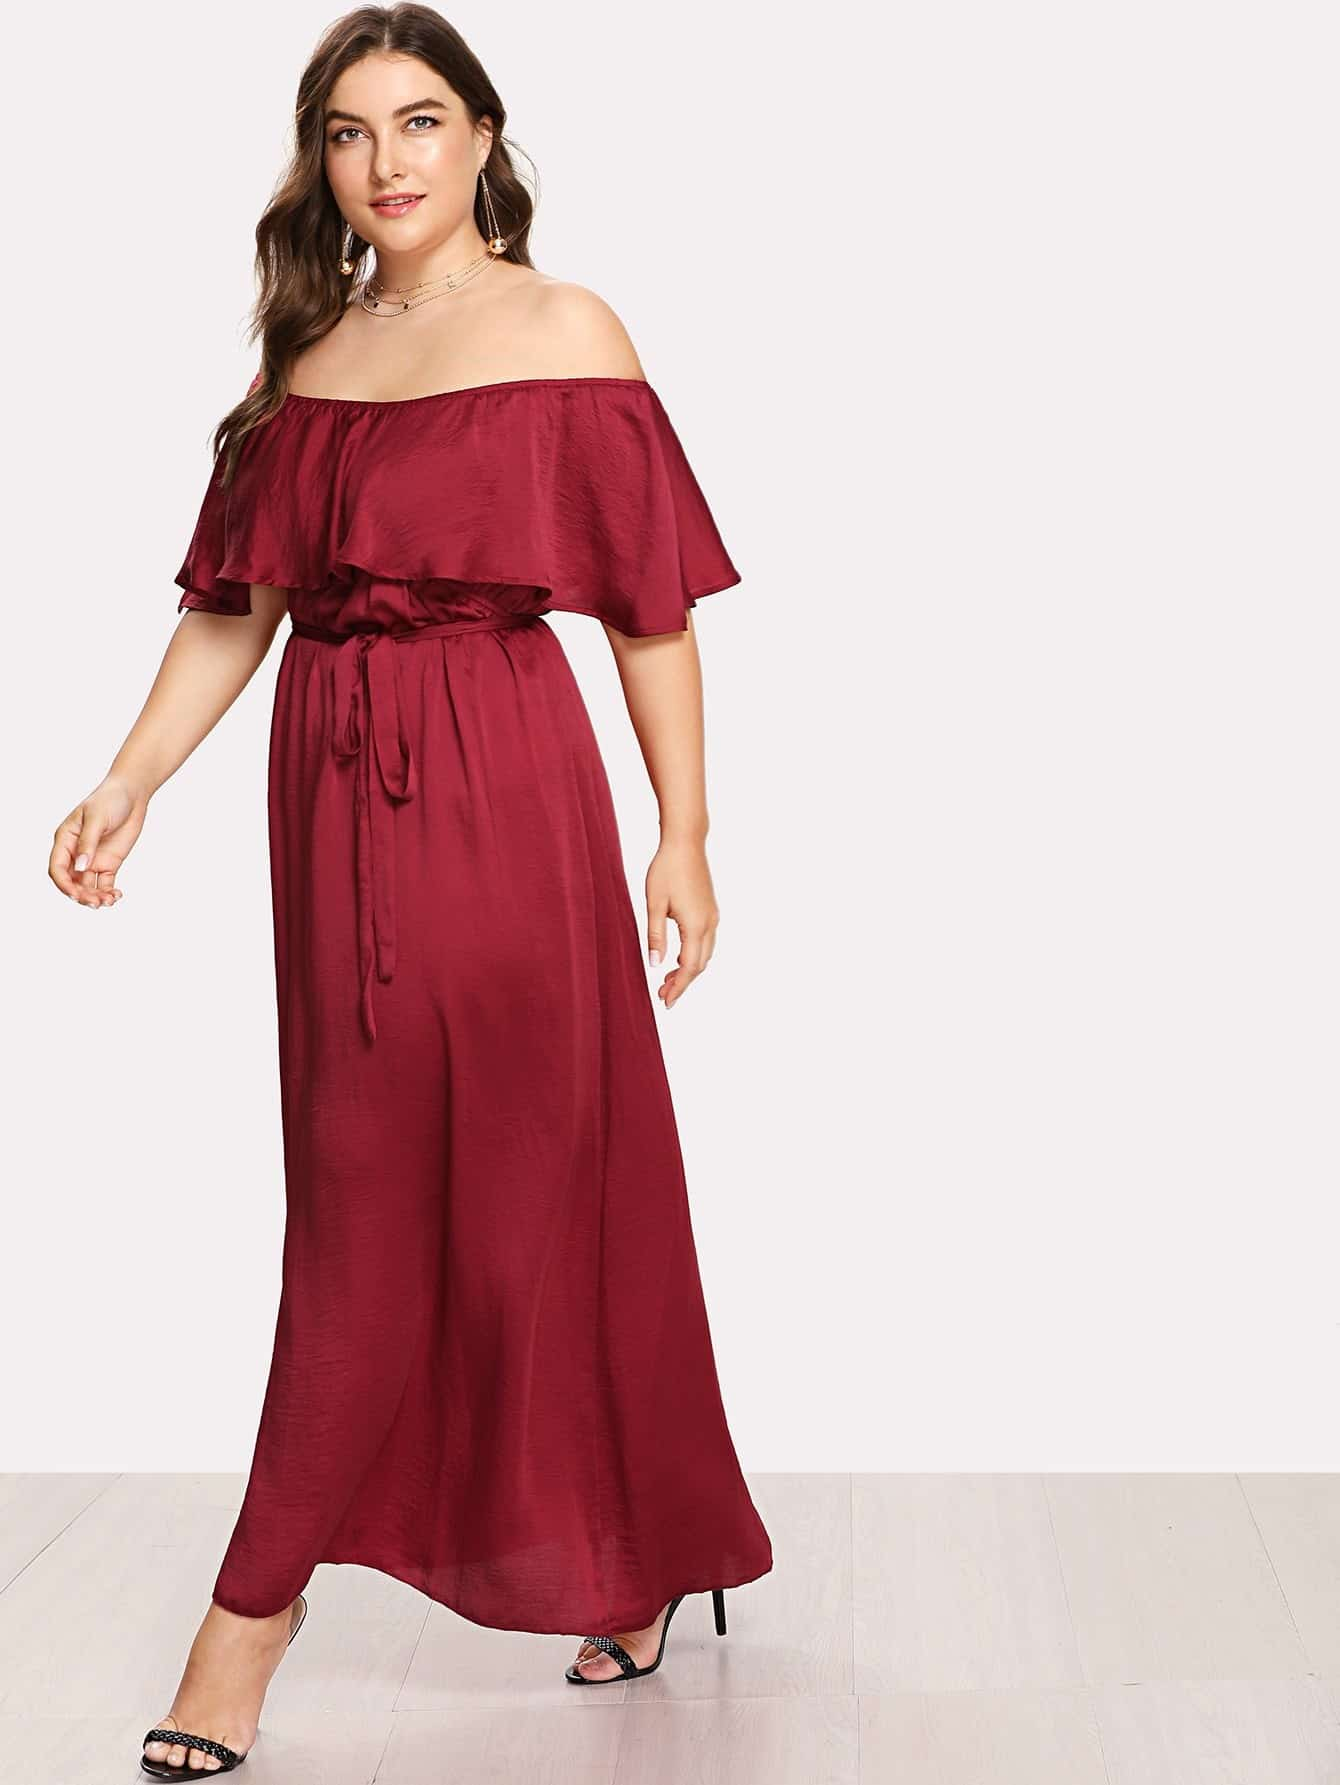 Self Tie Flounce Off Shoulder Dress chic off the shoulder neck tie flounce dress for women